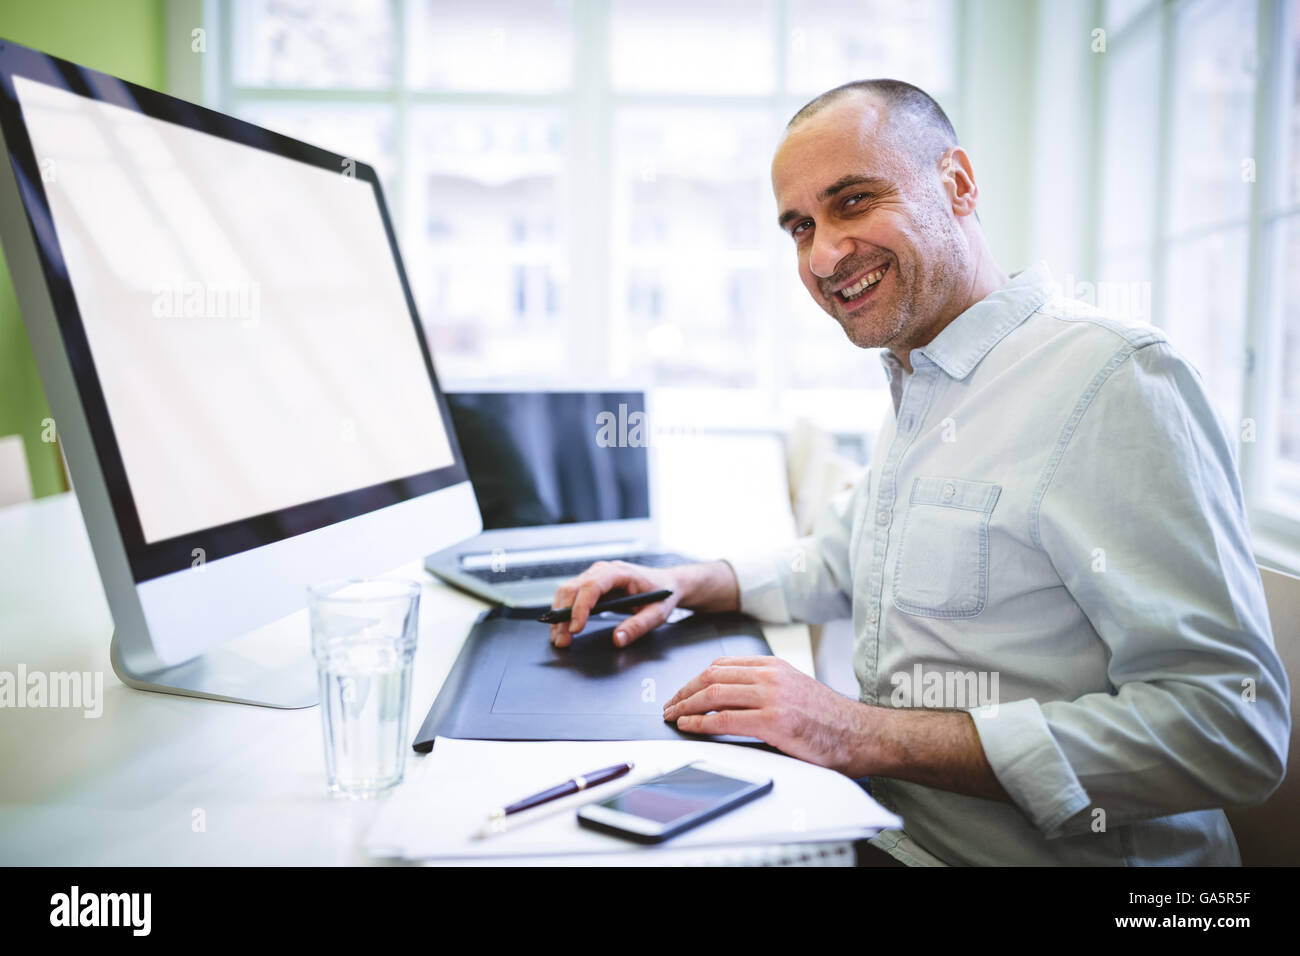 Graphic designer using computer - Stock Image